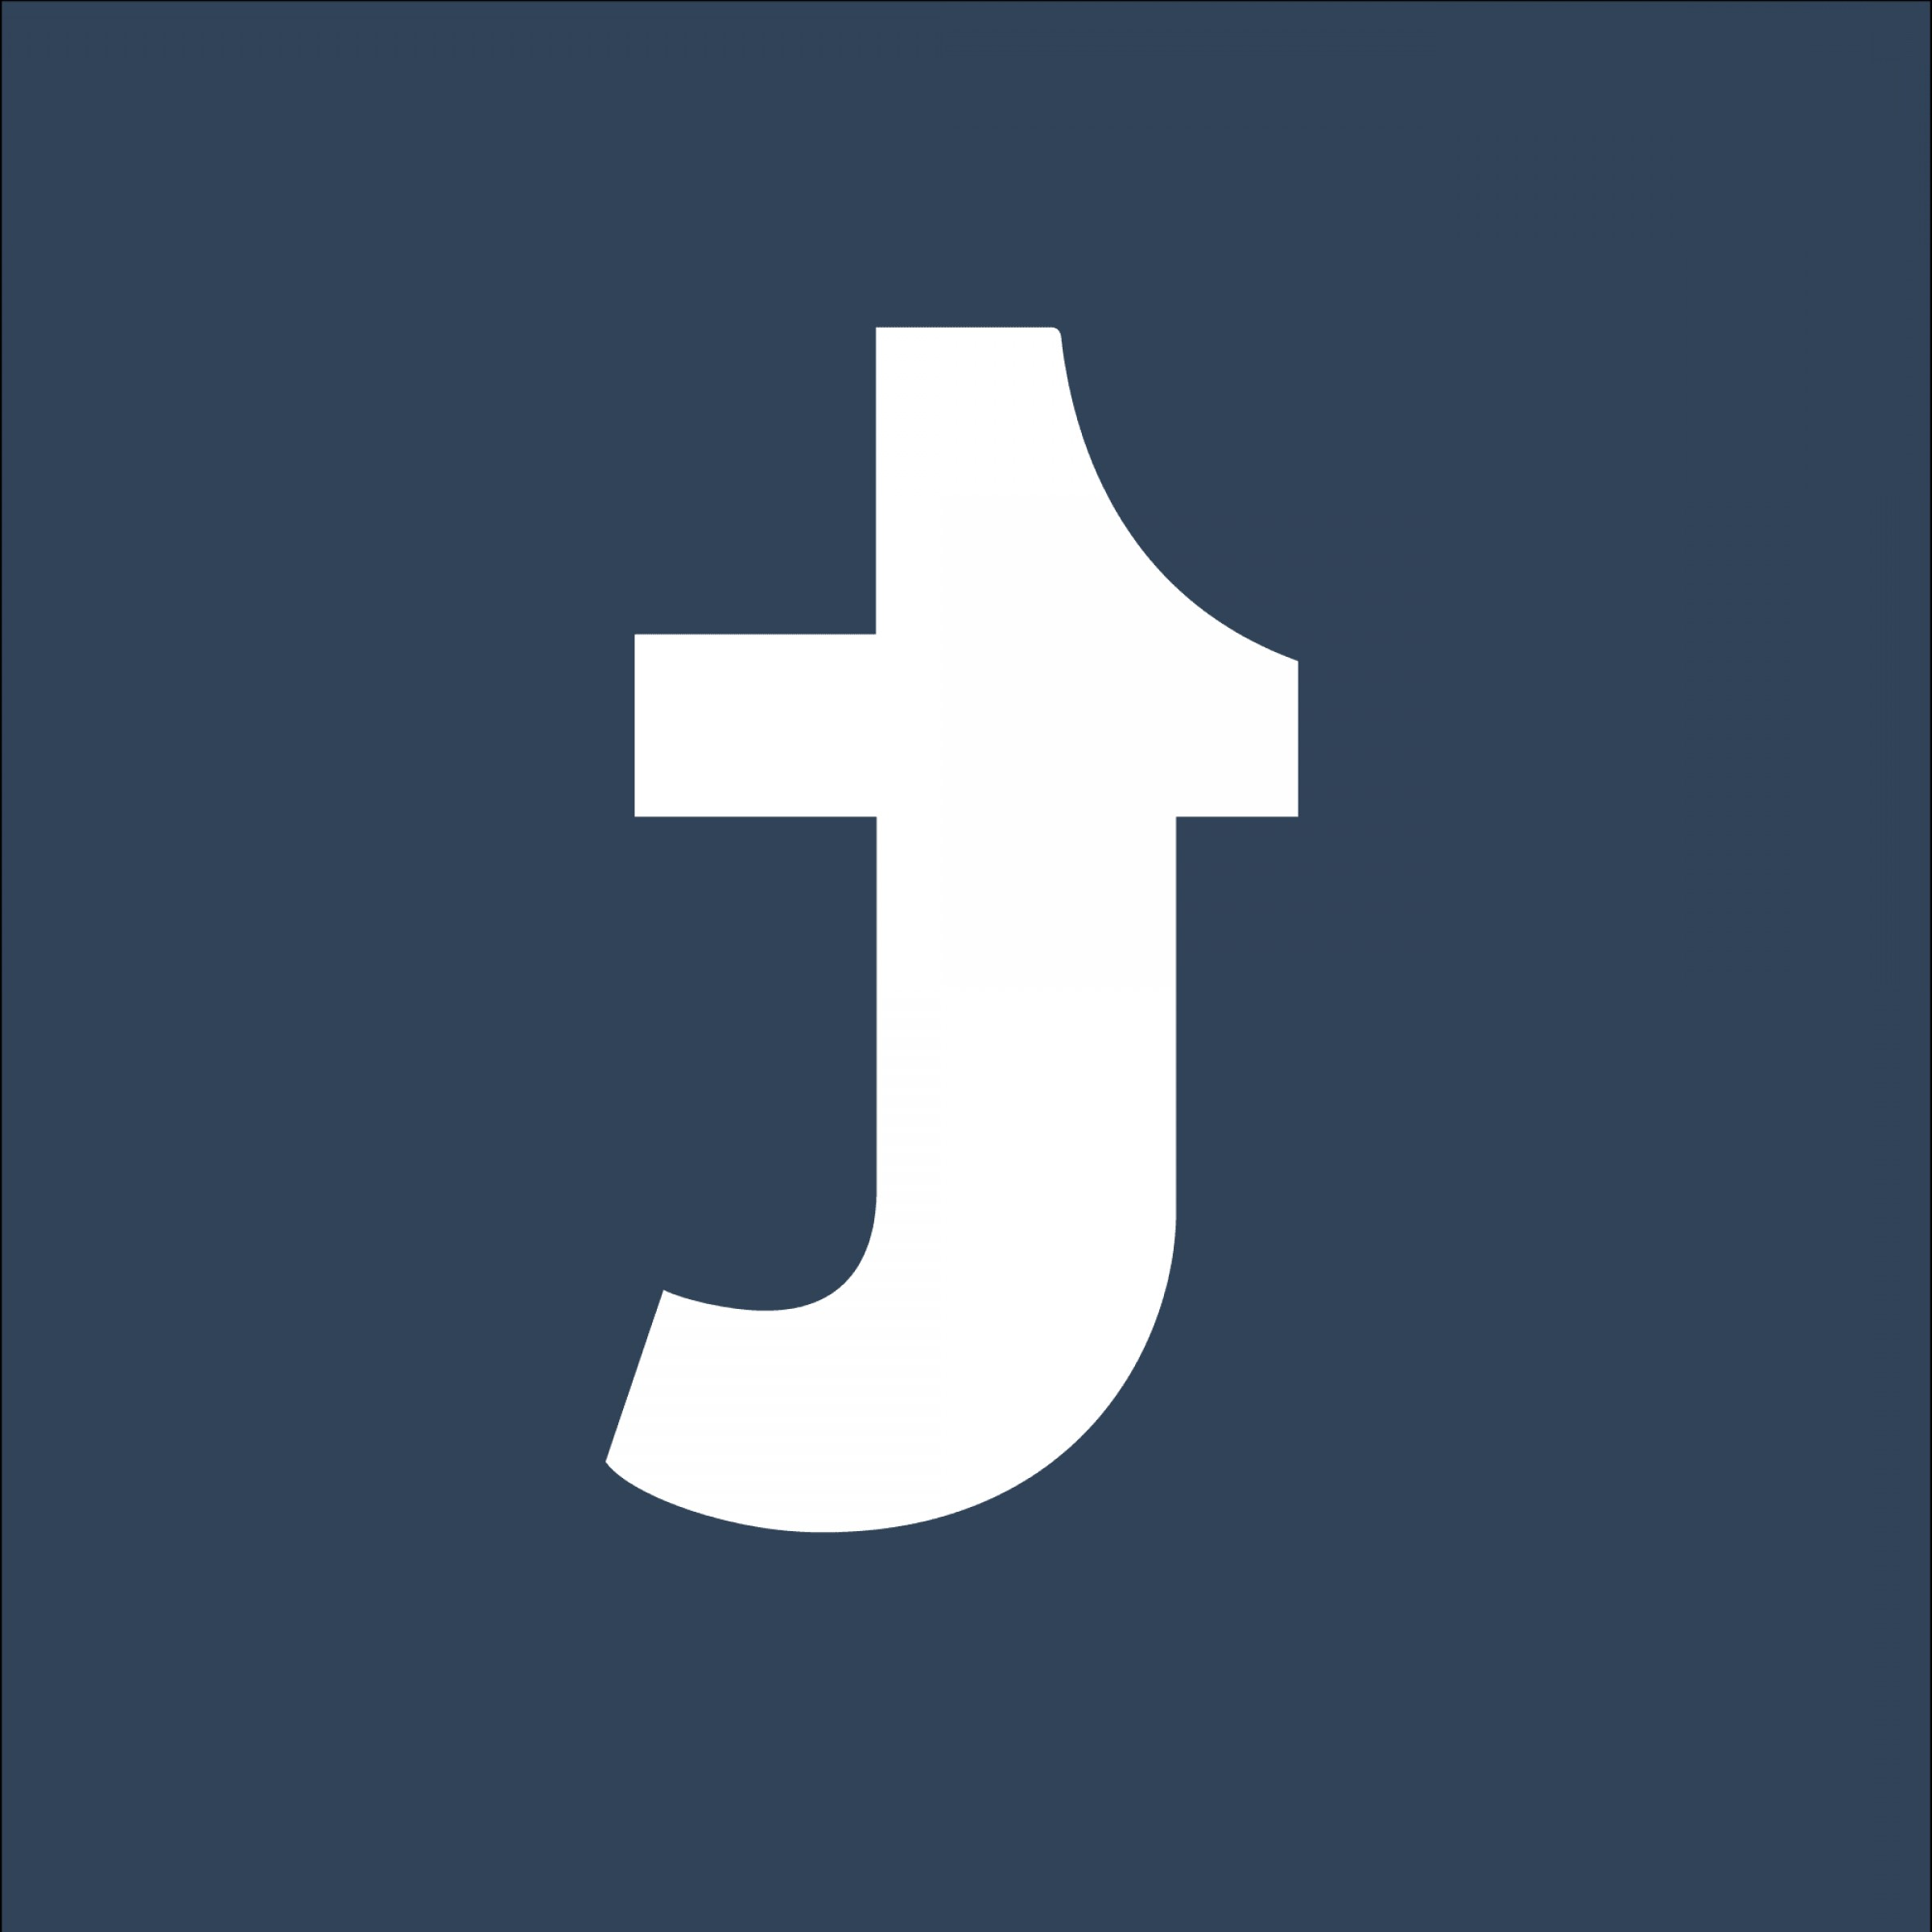 Tumblr App Icon Vector: How To Make Free Blog On Tumblr